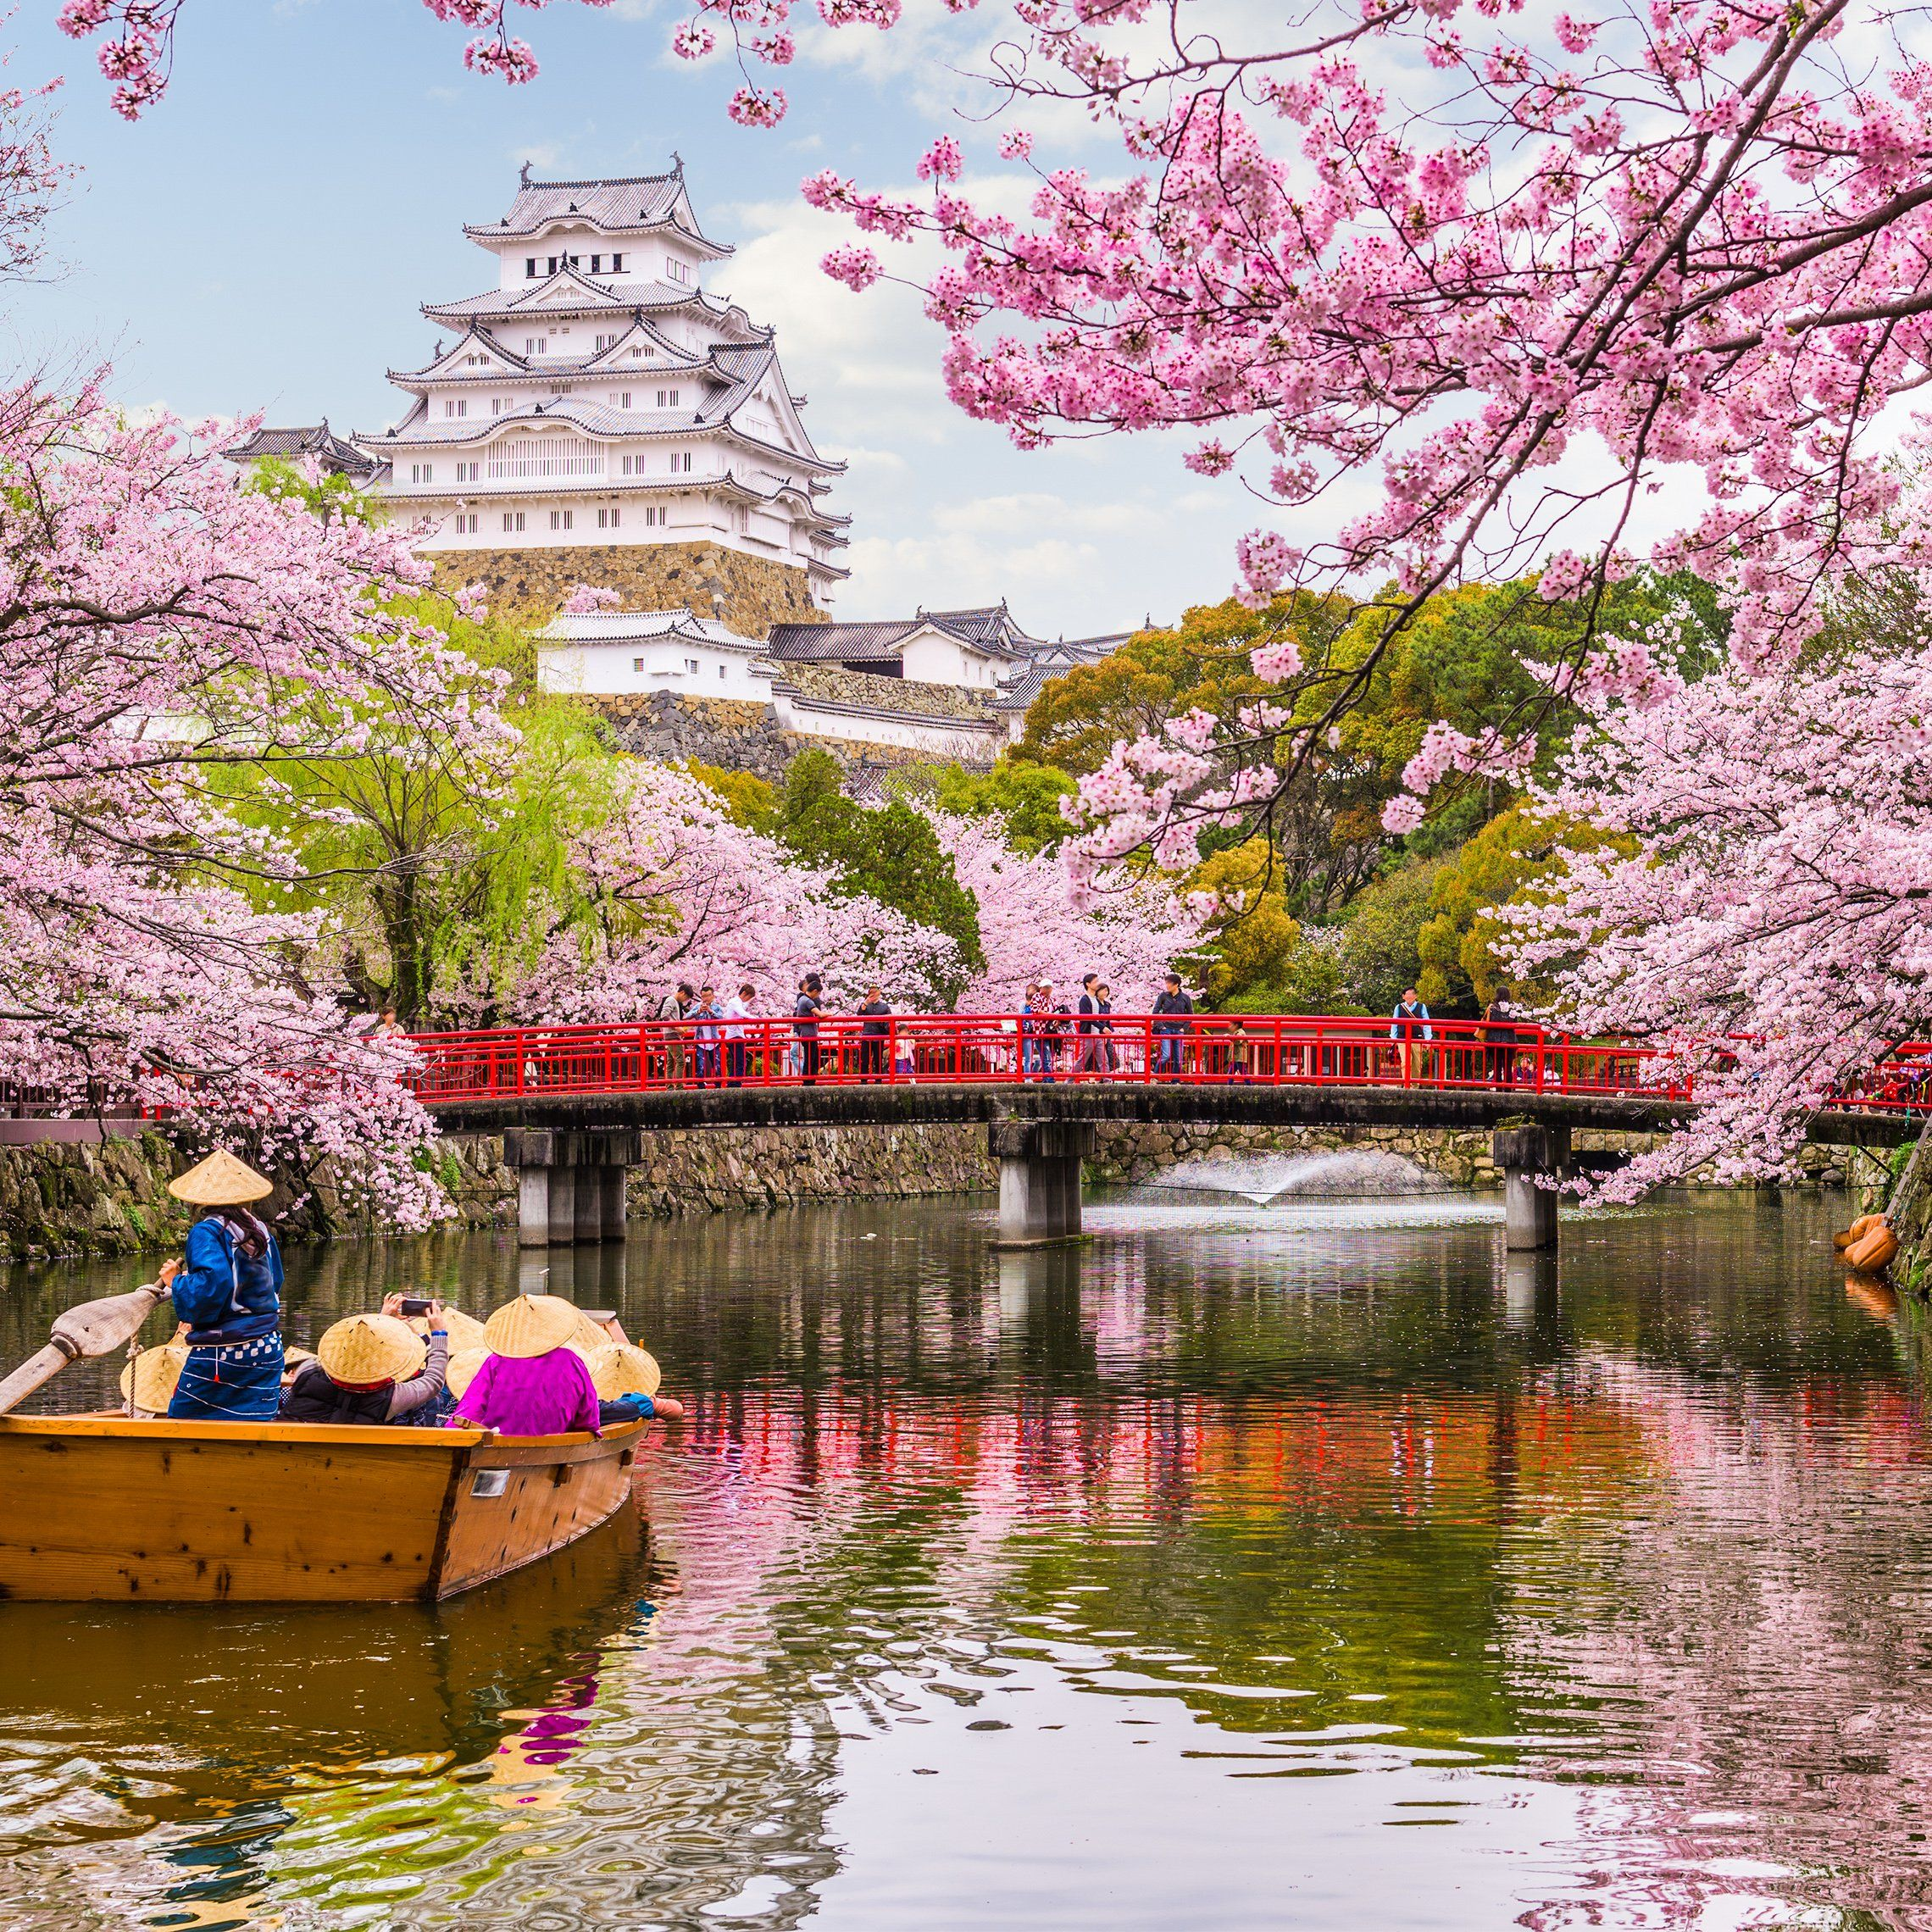 Cherry Blossom Season In Japan 10 Things To Know Cherry Blossom Japan Cherry Blossom Season Tokyo Cherry